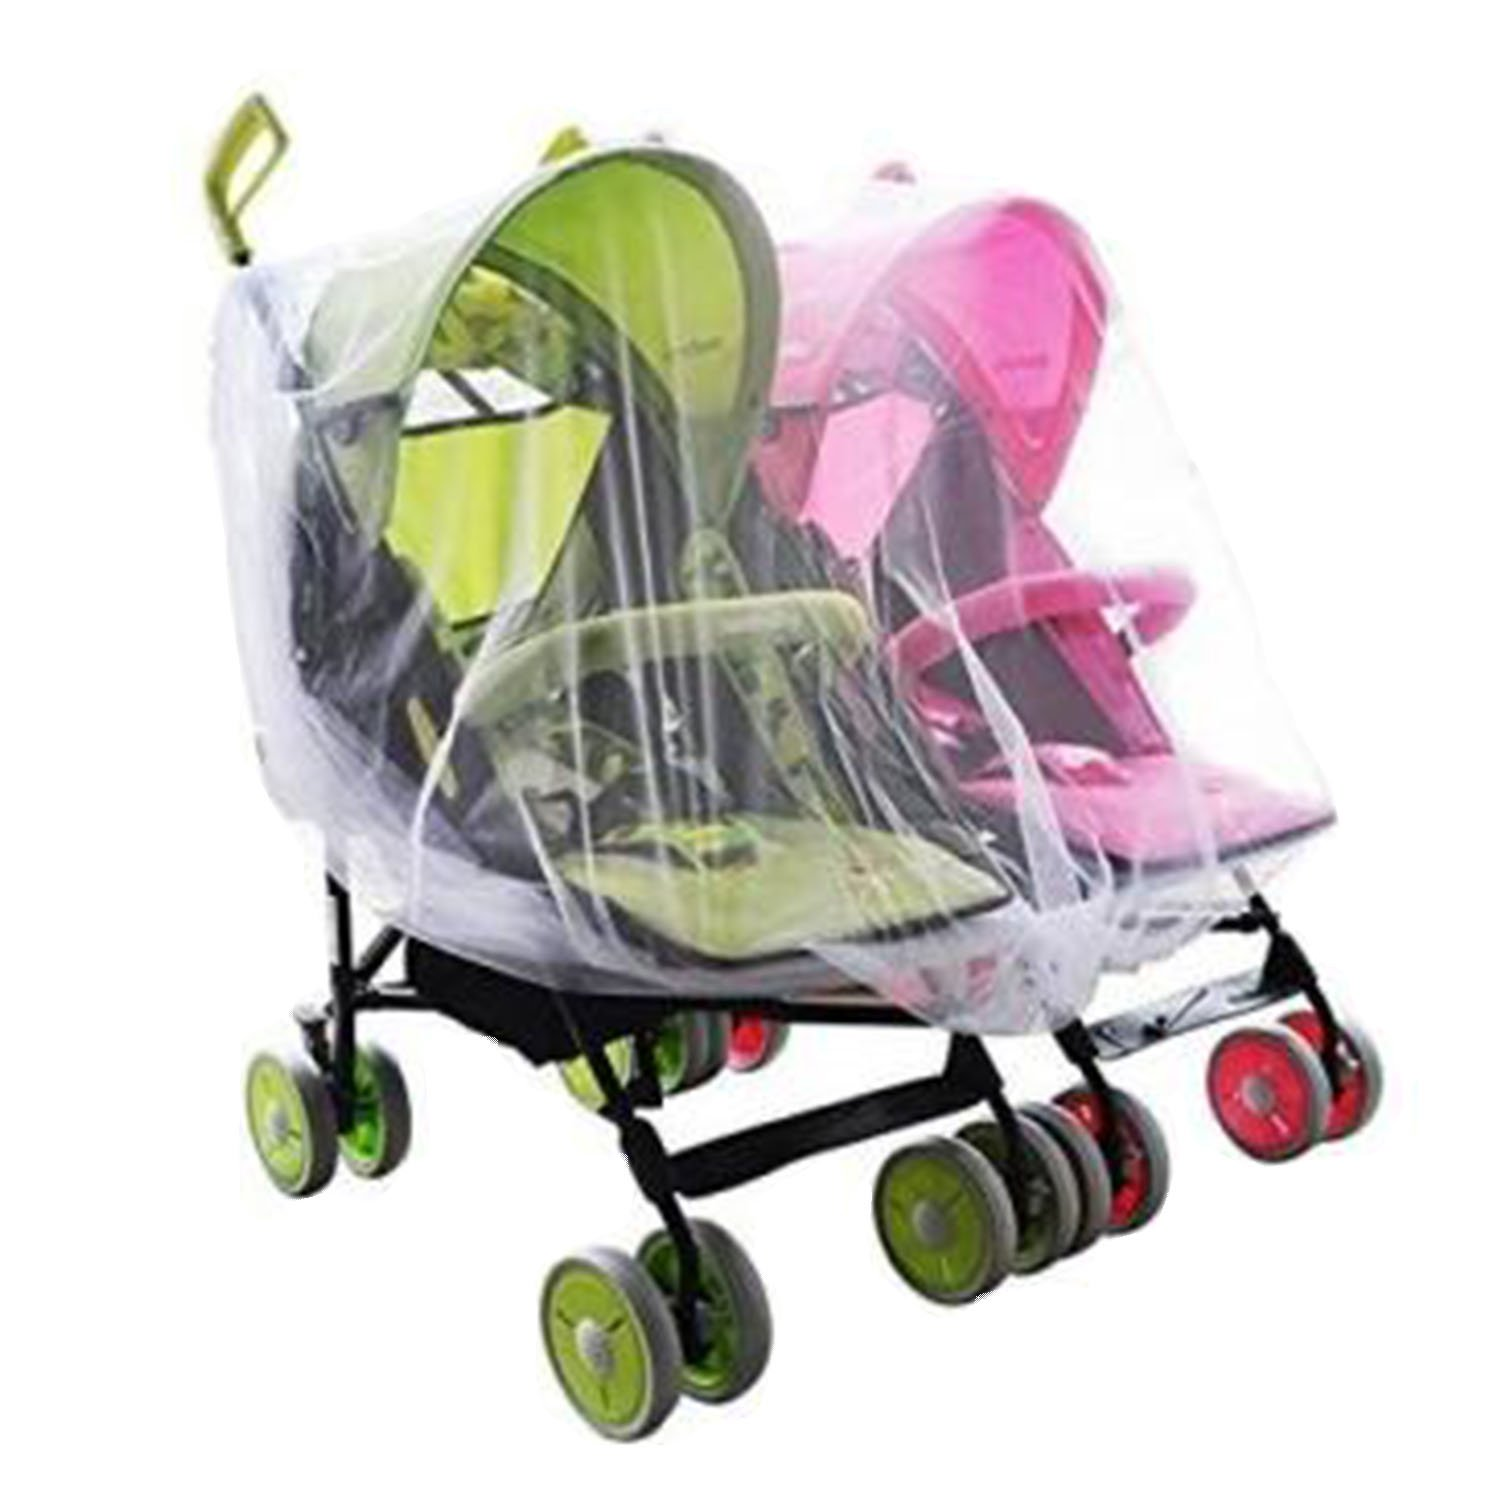 Portable Universal Twin Baby Stroller Mesh Mosquito Net Cover Preventing Bee Insect Bug for Tandem Side by Side Strollers Pushchairs Gosear